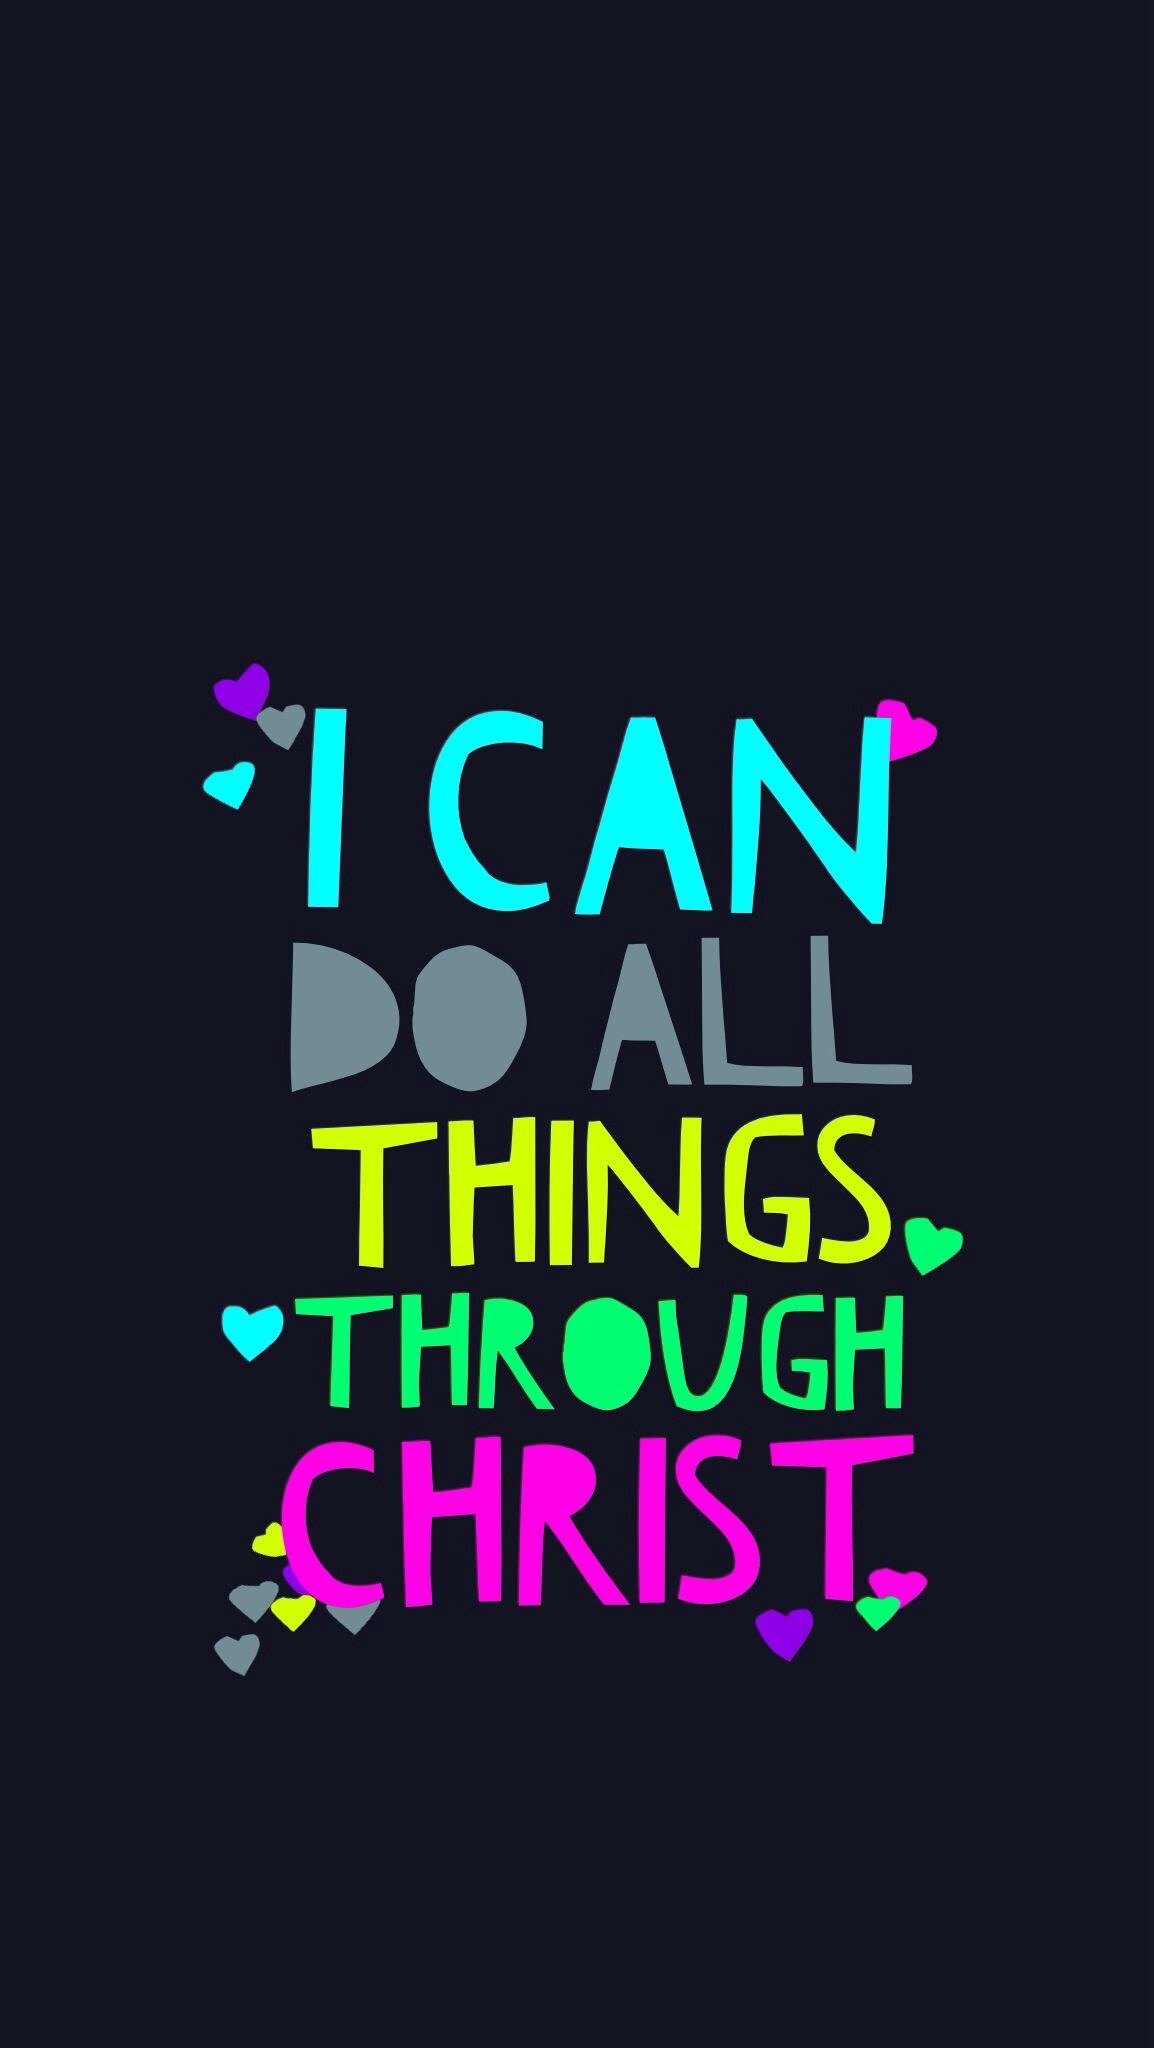 Christian Wallpapers For Android